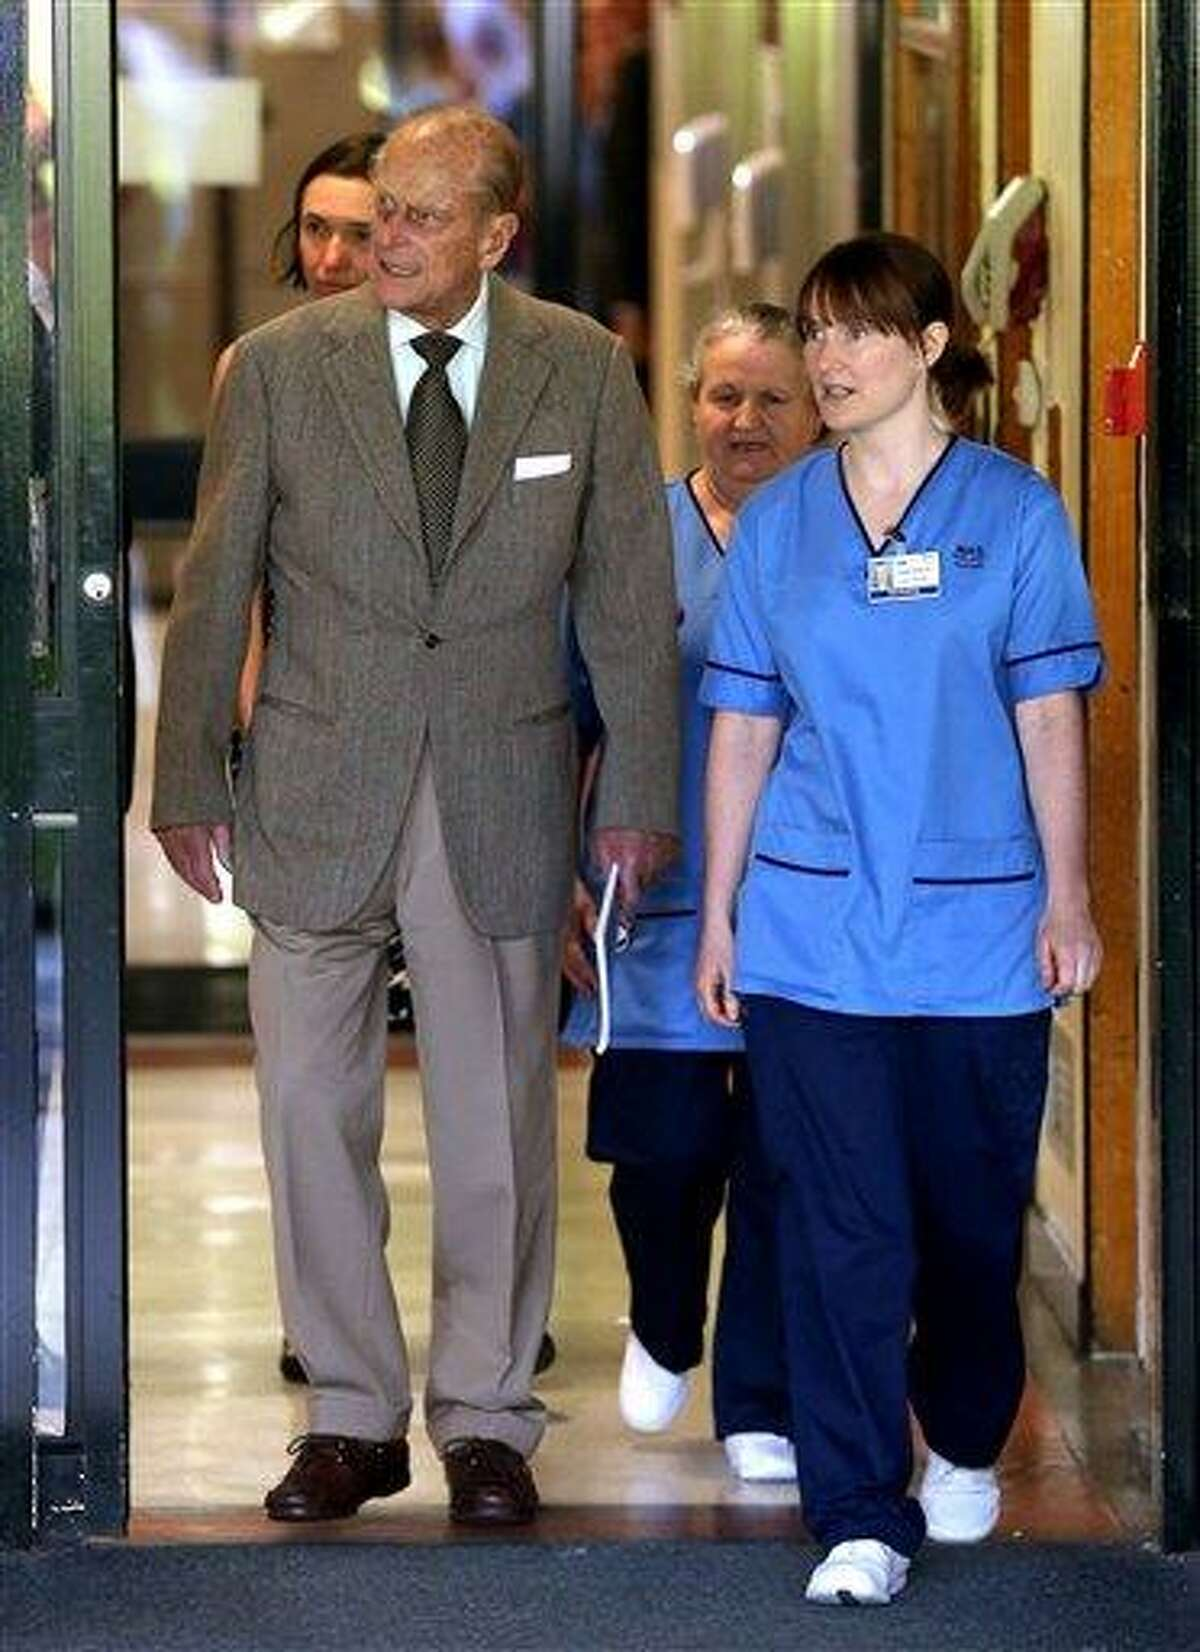 Britain's Prince Philip leaves Aberdeen Royal Infirmary, Aberdeen, Scotland Monday after five days of treatment for a bladder infection. The 91-year-old husband of Queen Elizabeth II was hospitalized Wednesday with a recurrence of an infection he suffered earlier this summer. Buckingham Palace said Philip was discharged from Aberdeen Royal Infirmary in northeast Scotland was returning to the nearby Balmoral estate, where the royal family is on vacation. Associated Press